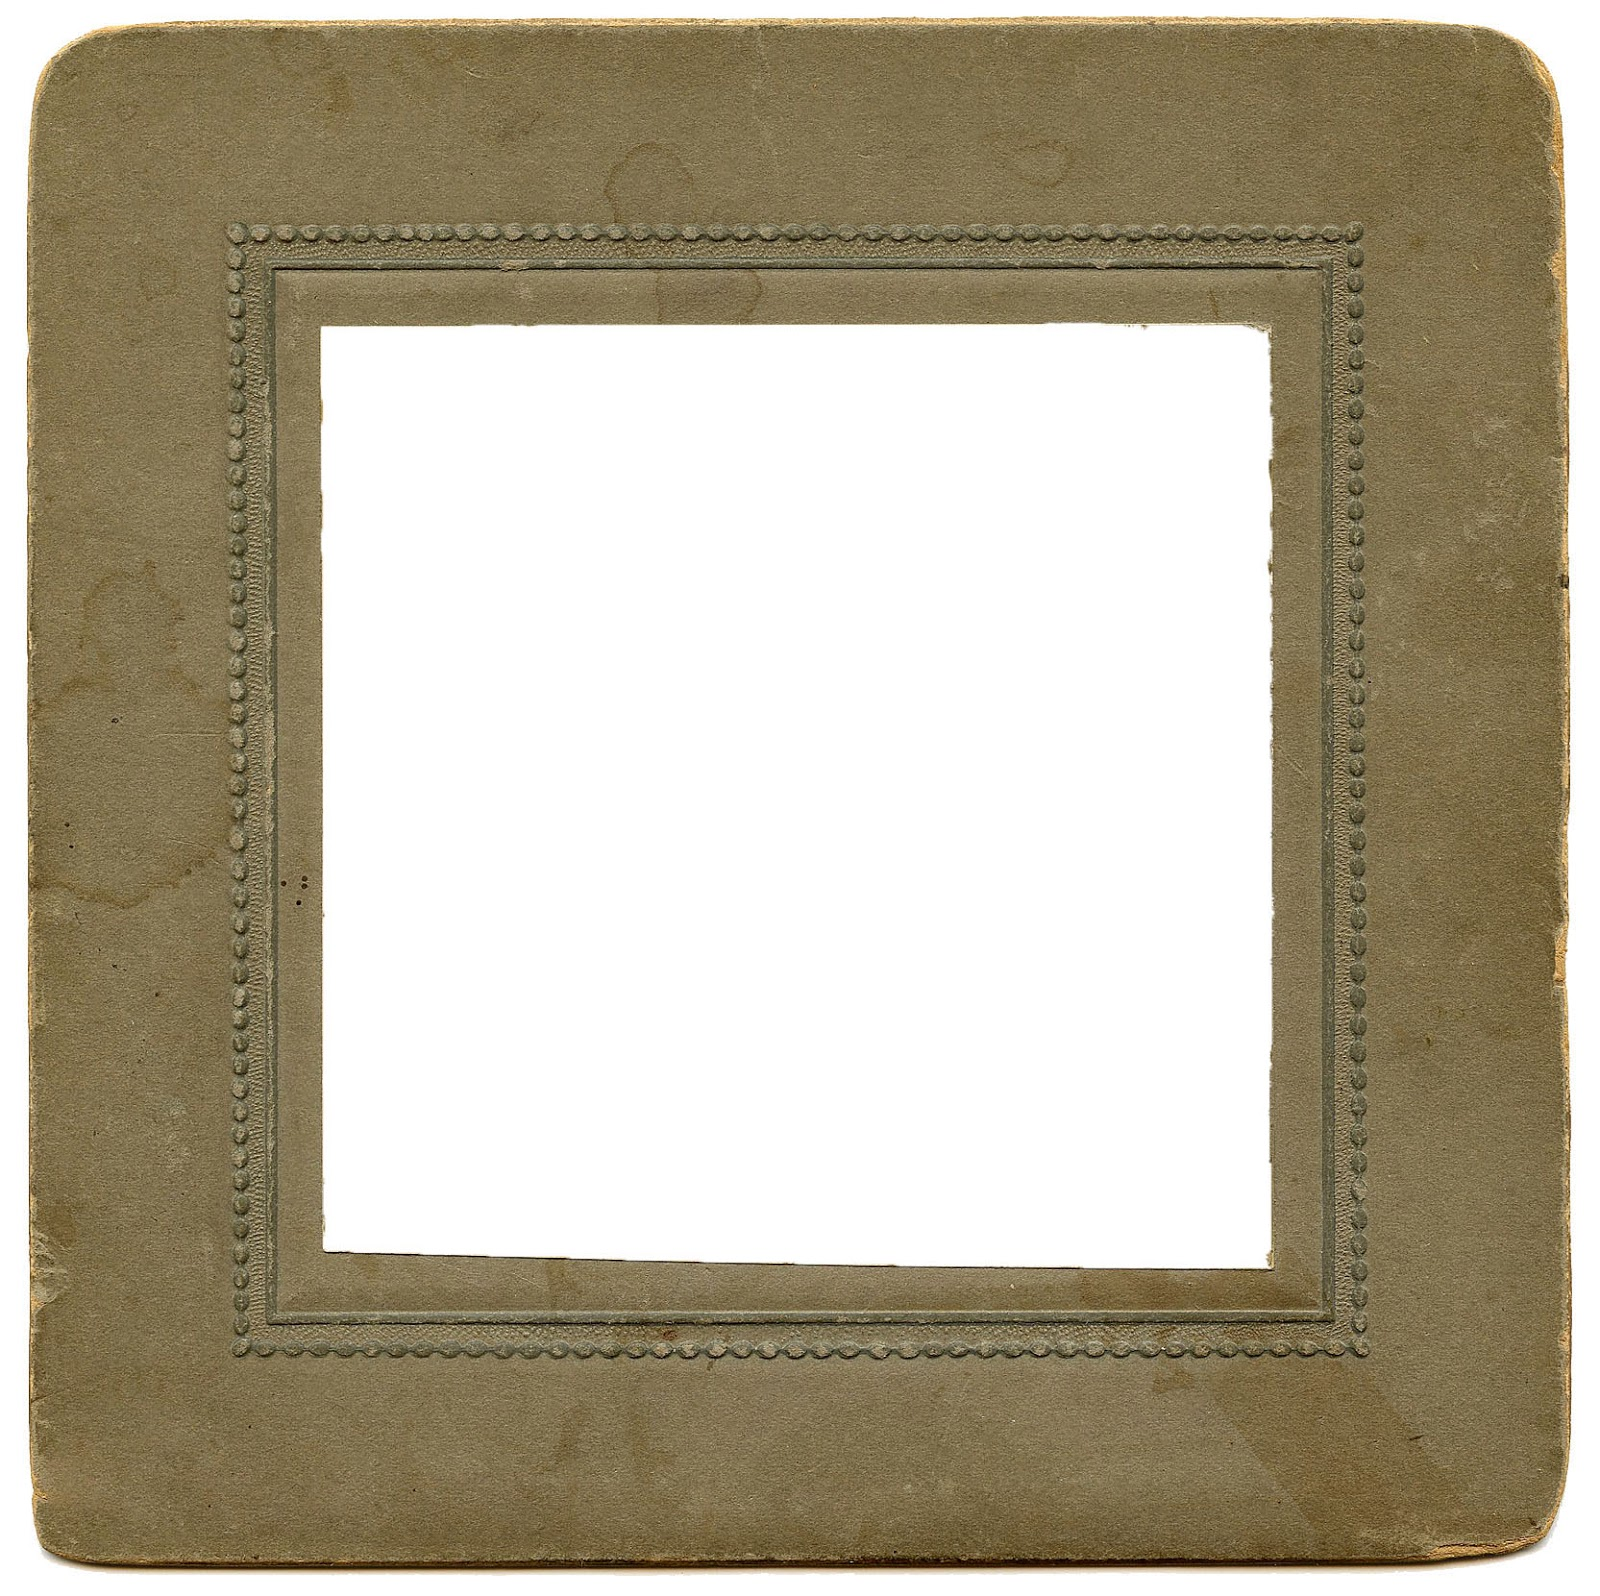 Vintage Ephemera  Old Photo Frame  The Graphics Fairy